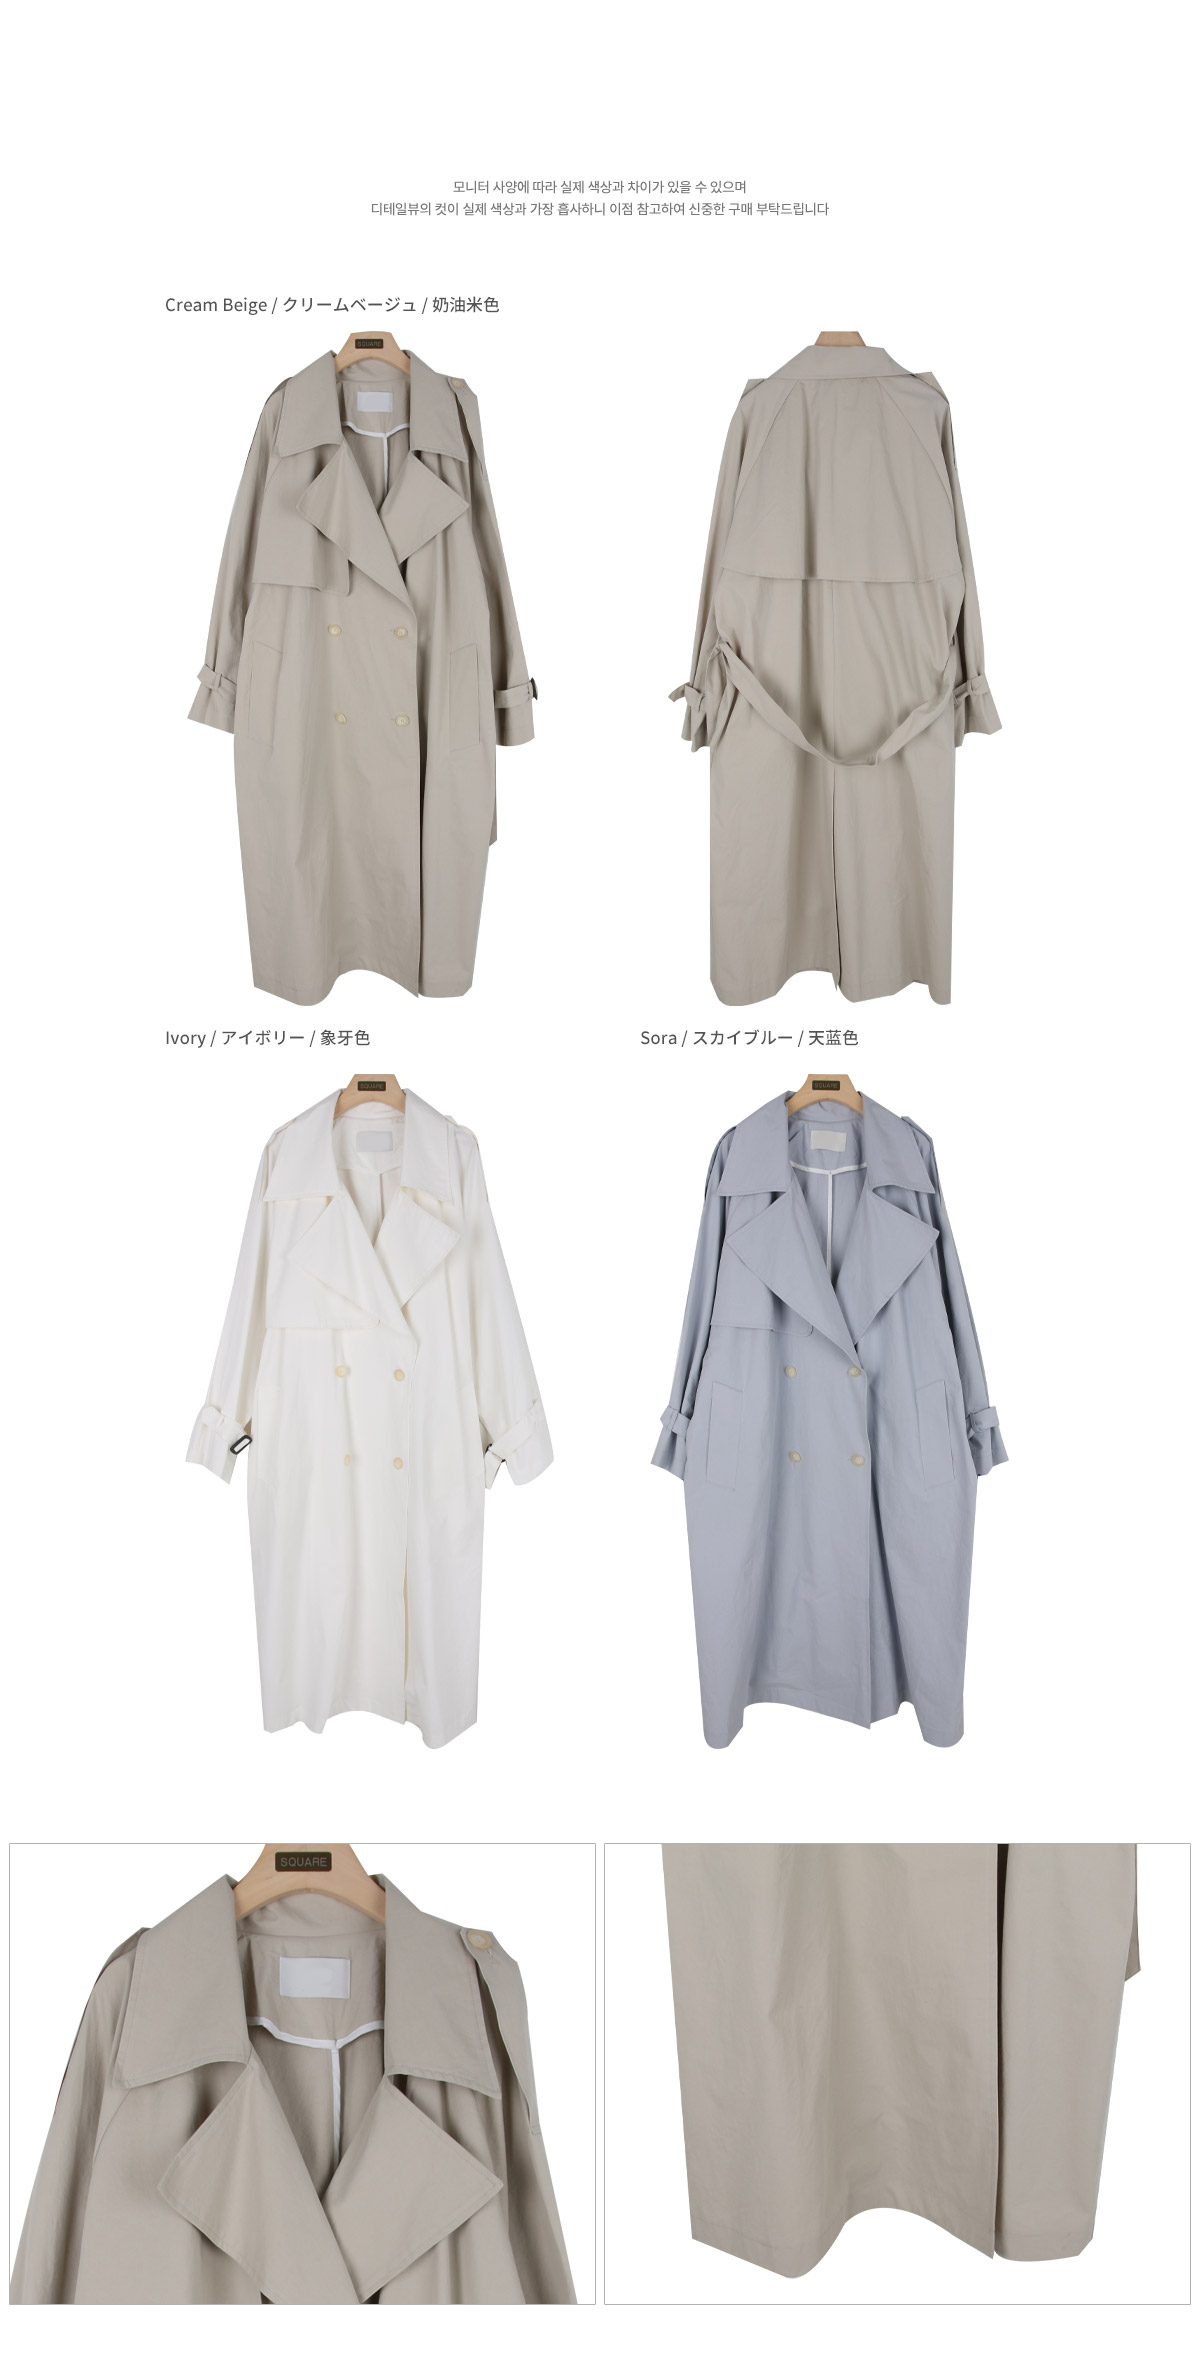 Soda trench coat